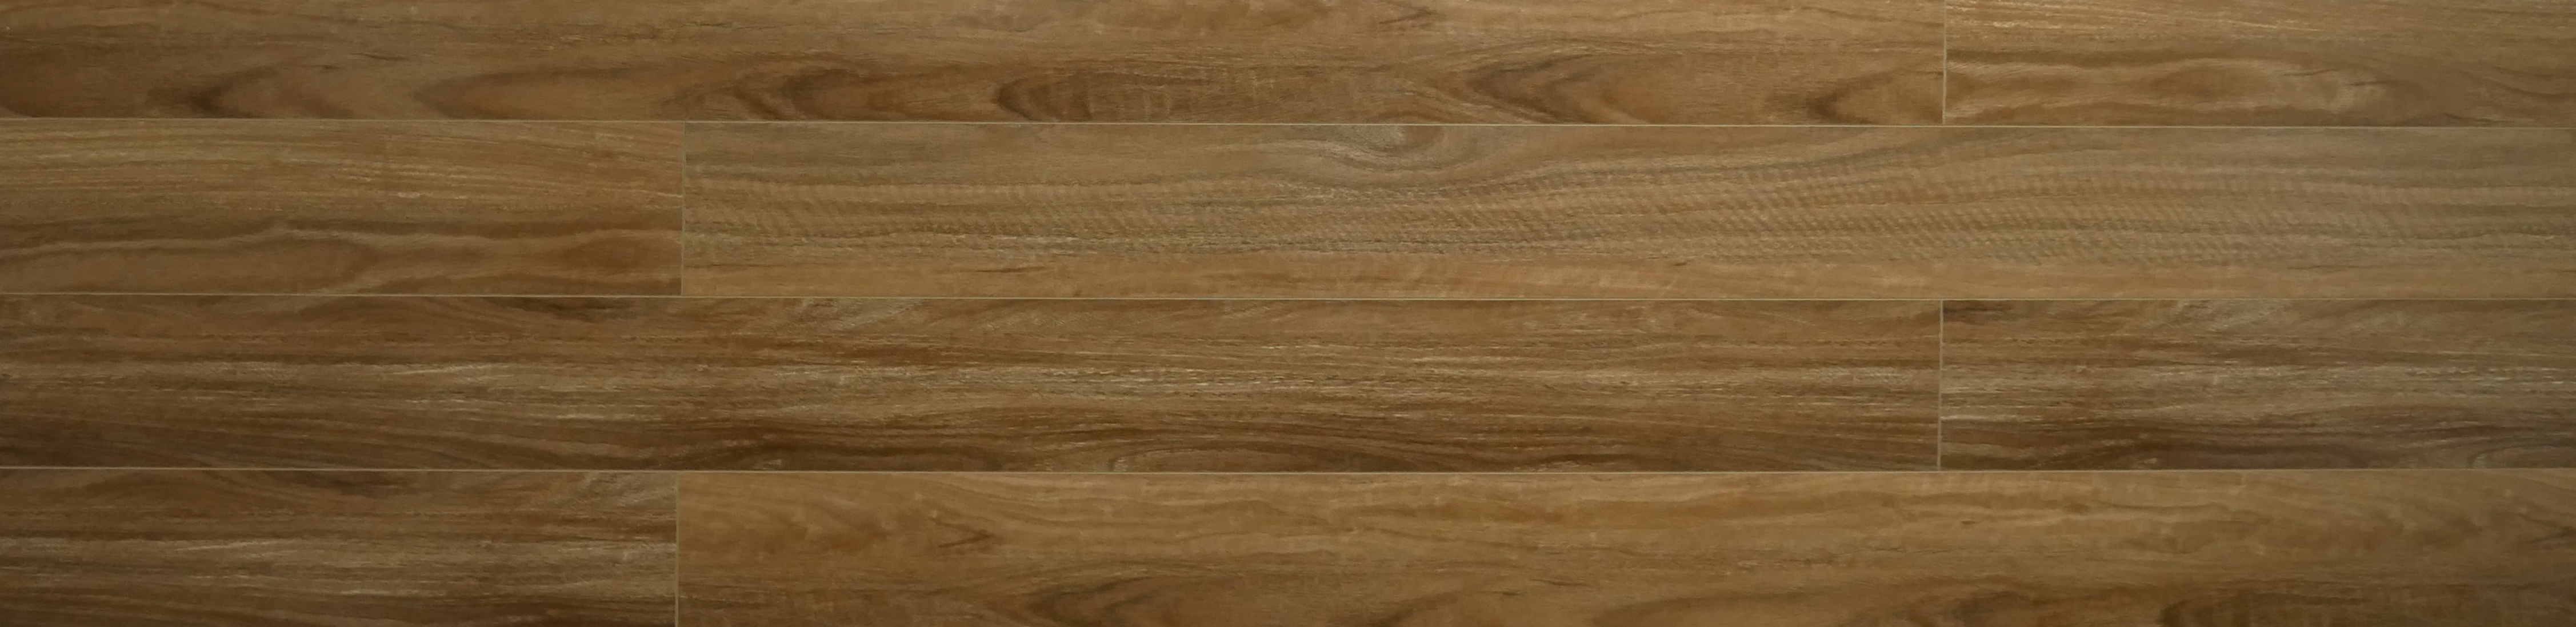 Spotted Gum 12mm Laminate